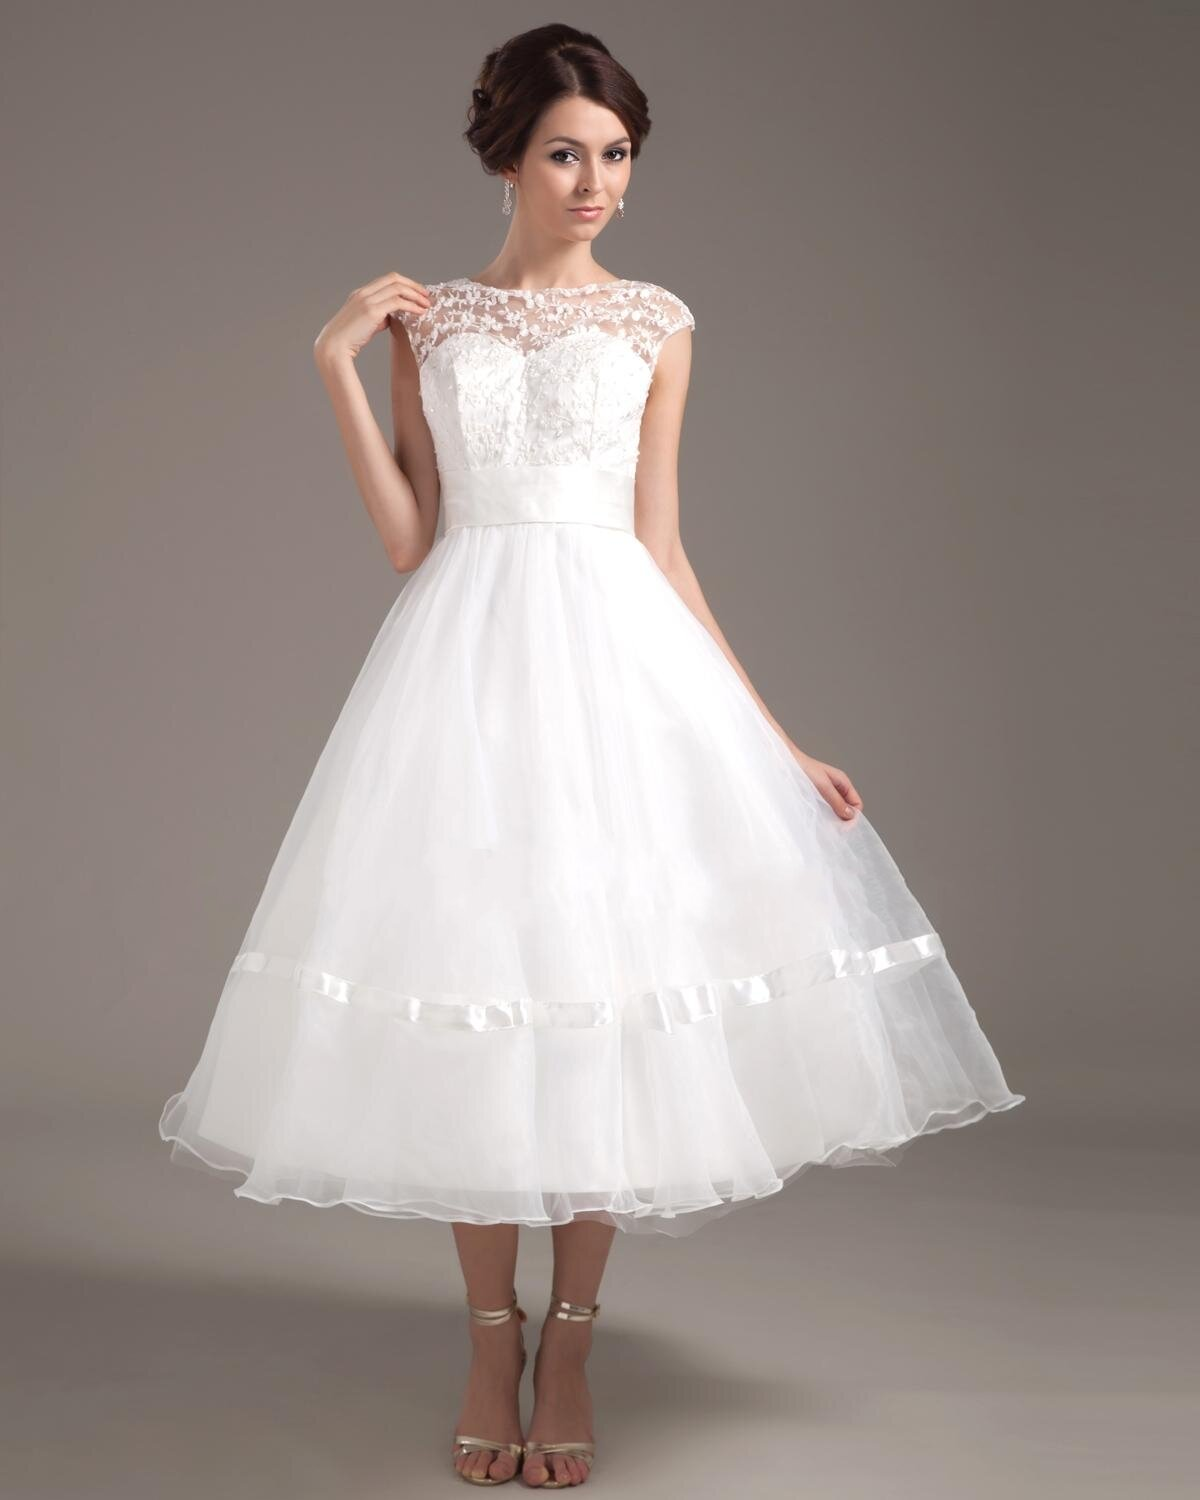 e26de3a66b7 Tea Length Casual Wedding Dresses With Sleeves